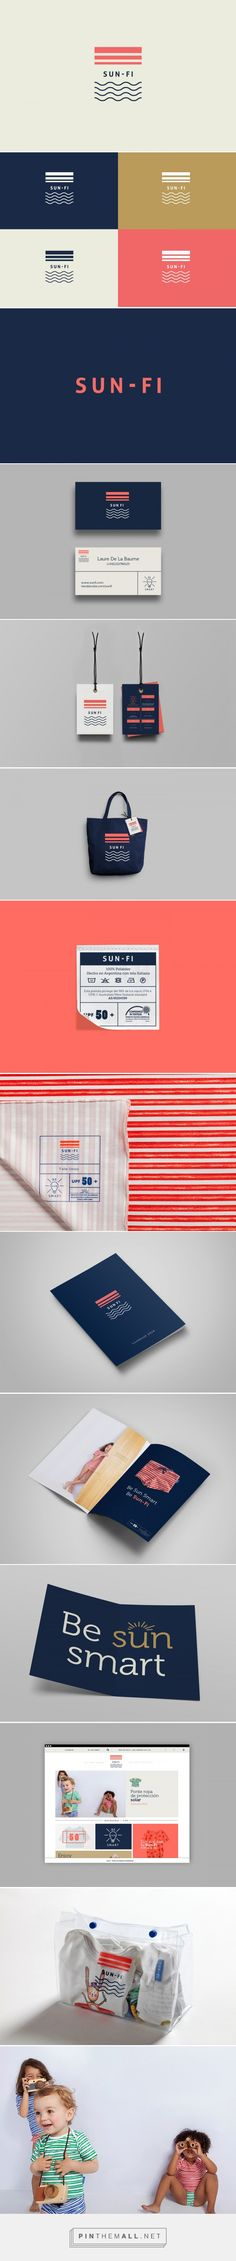 Sun-Fi Branding by Bunker3022 on Behance | Fivestar Branding – Design and…